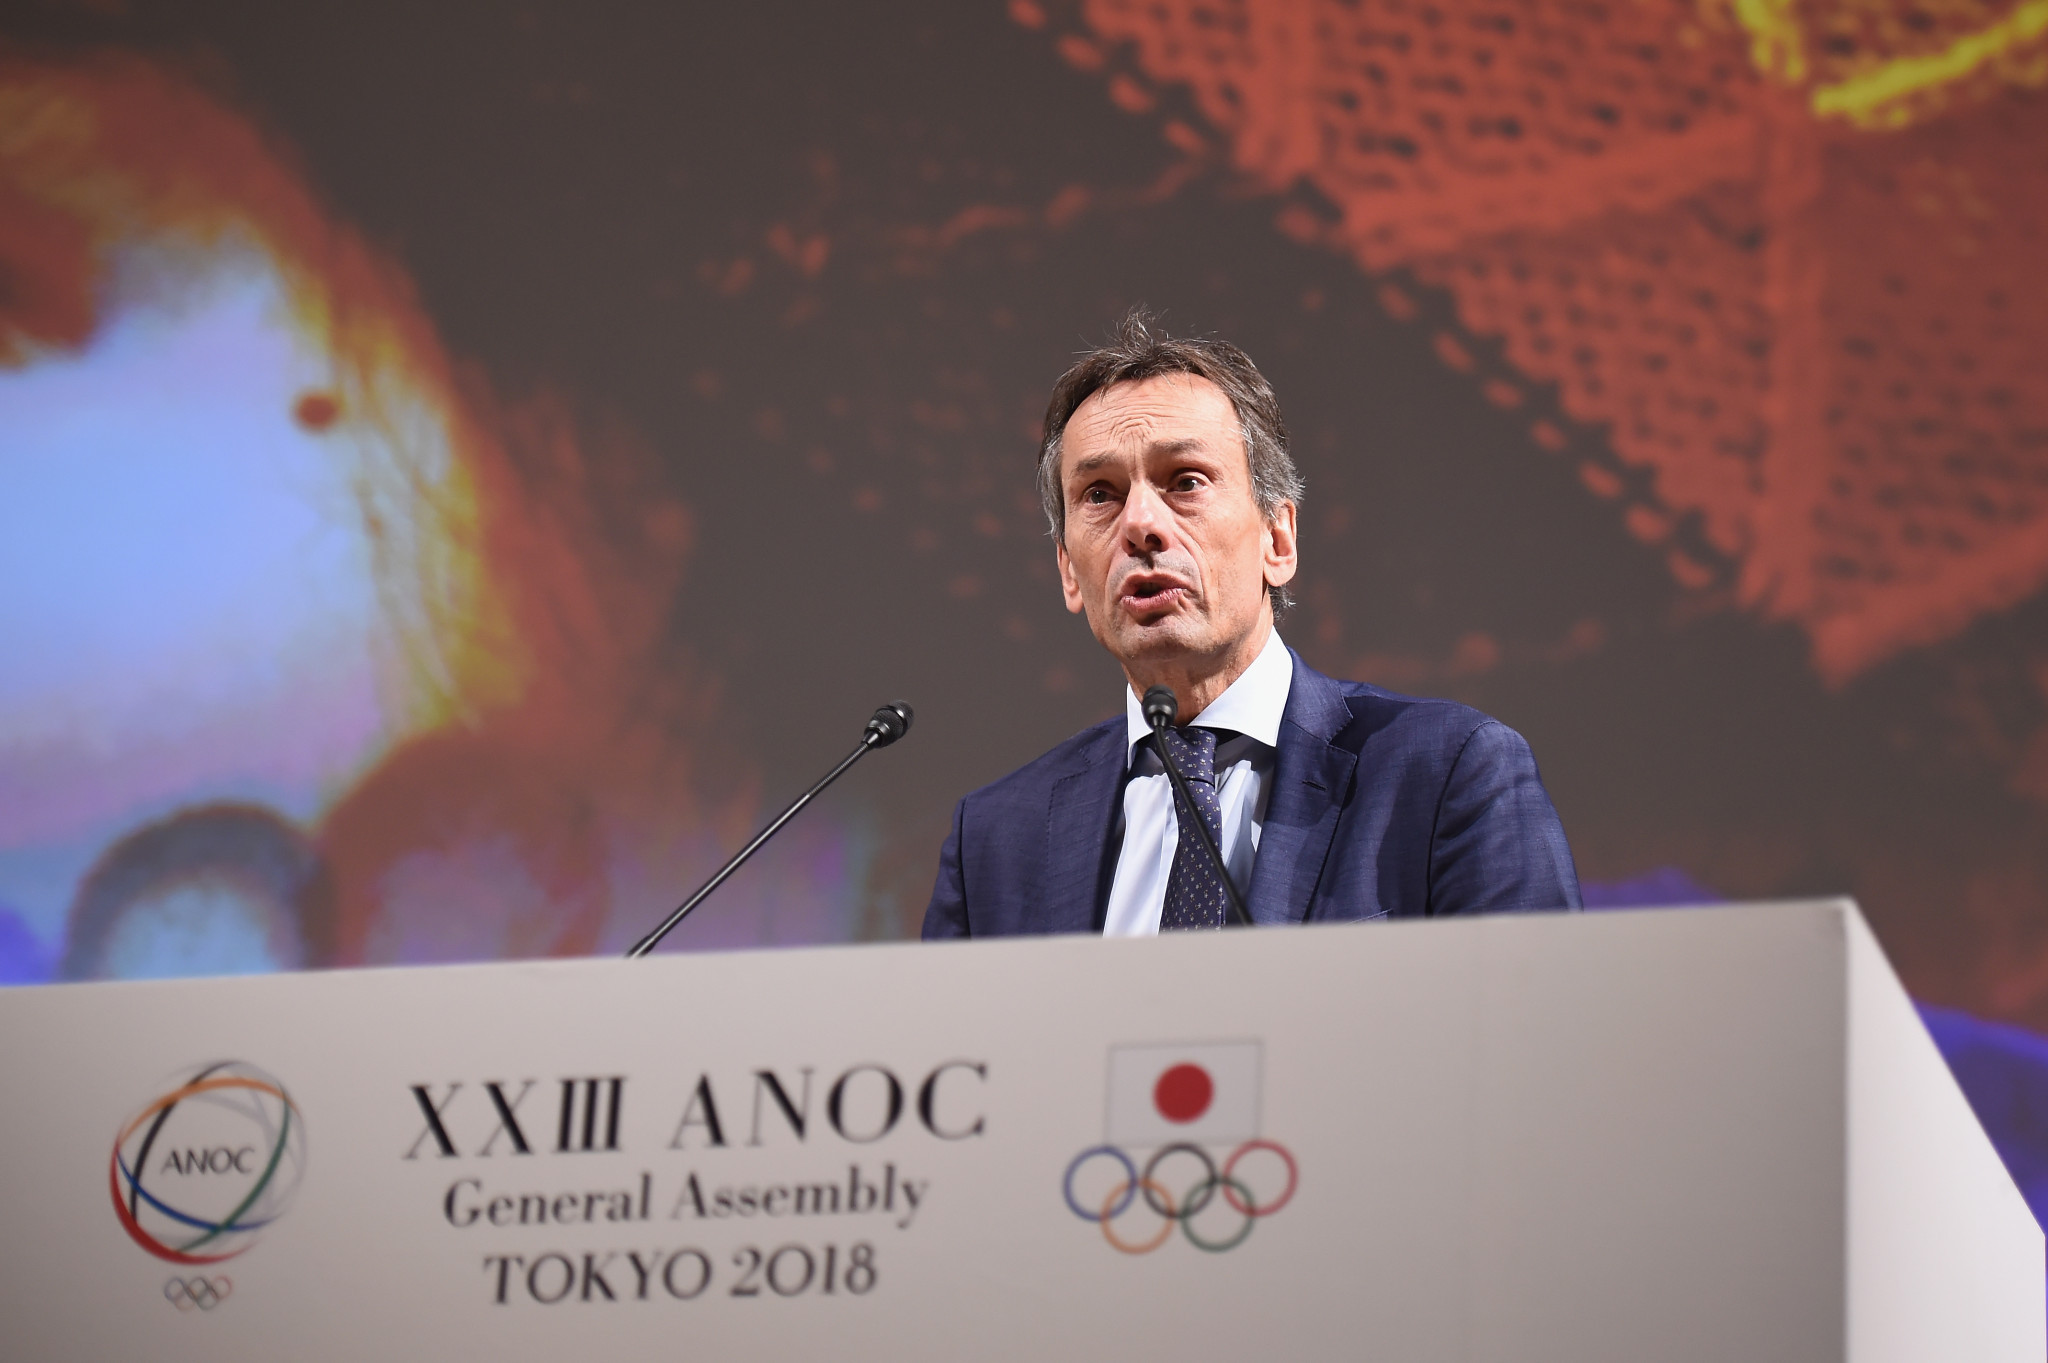 IOC director general Christophe de Kepper gave an update on Agenda 2020 ©Getty Images